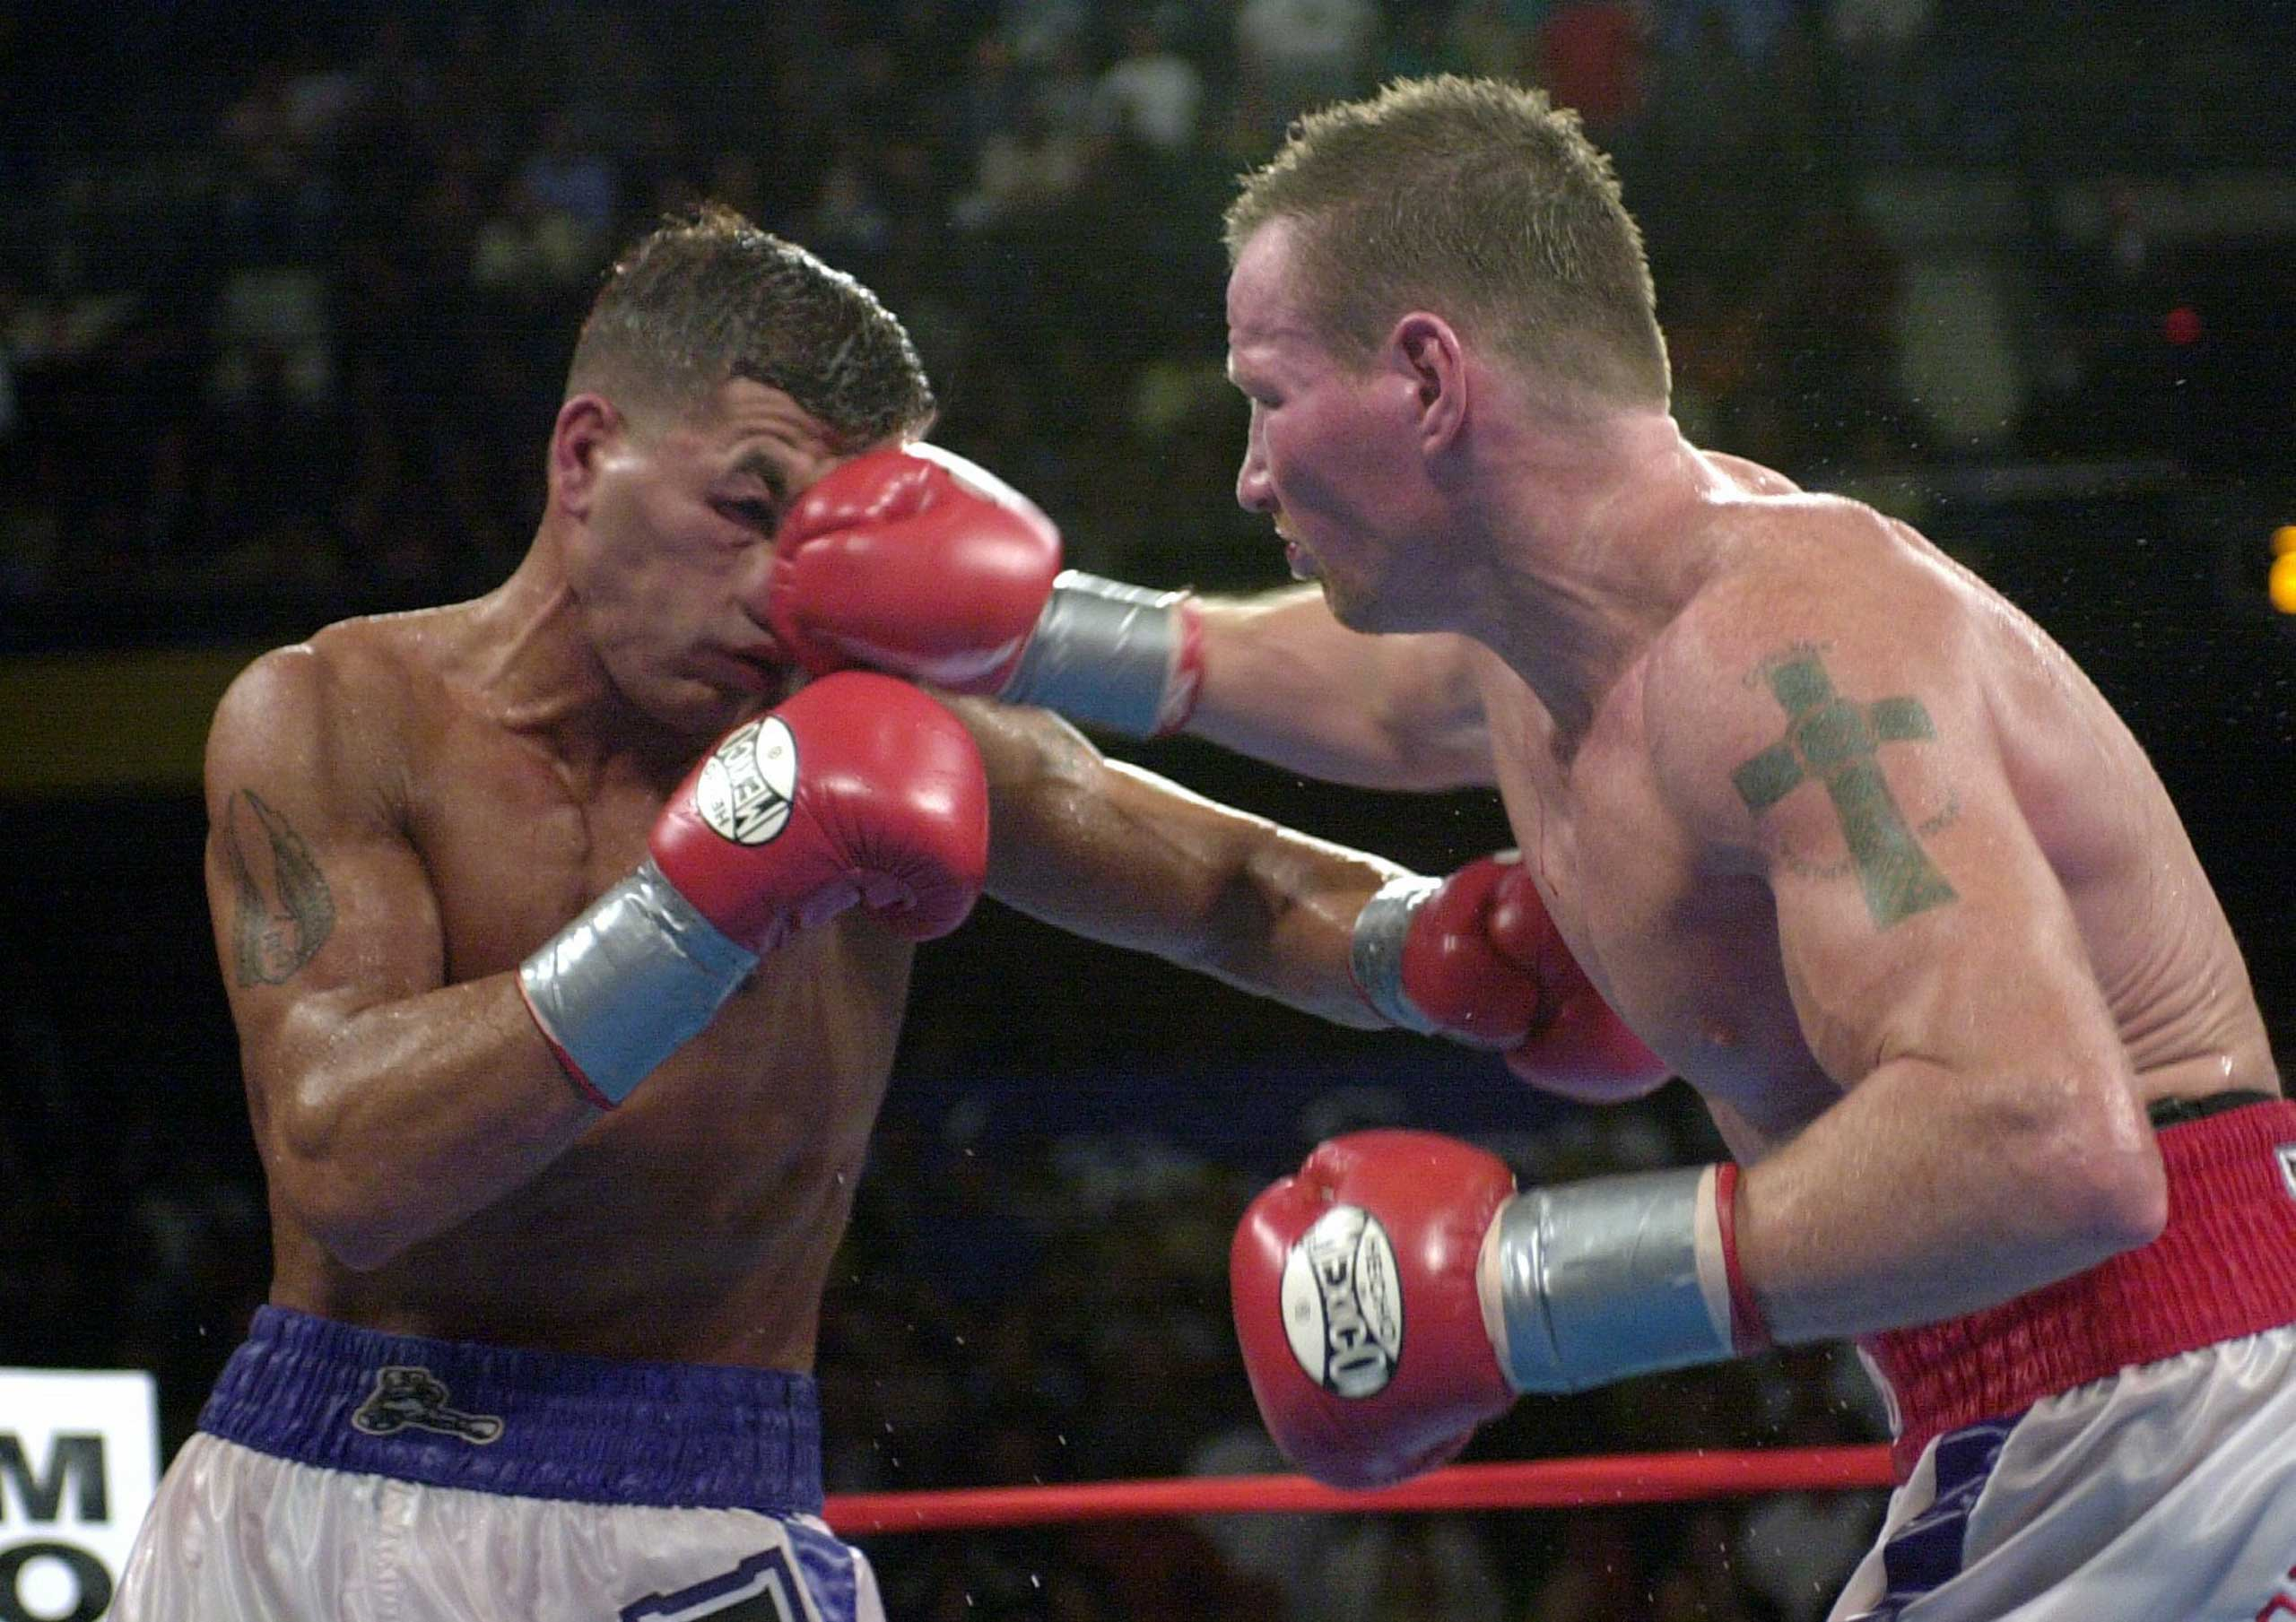 "<b>Micky Ward vs. Arturo Gatti, May 18, 2002</b> This pair put fans through the ringer three times, but their first fight will be seen as their fiercest. Both withstood almost non-stop punishment through 10 rounds of grueling action. Ward, who dropped Gatti in the ninth round with a savage left hook to the body, won the fight by majority decision. That ninth round was called ""The Round of the Century"" by Emanuel Steward, who co-hosted the fight on HBO. Ring Magazine named the fight the best of the year with boxing fans and writers going one (hyperbolic) step further, hailing it as the fight of the century. Wherever you stood on this, you undeniably wanted more. And fans got it, with Gatti winning two subsequent rematches. Ward announced his retirement before their third fight and will be portrayed by Mark Wahlberg in the film 'The Fighter'. Gatti tragically died in 2009."